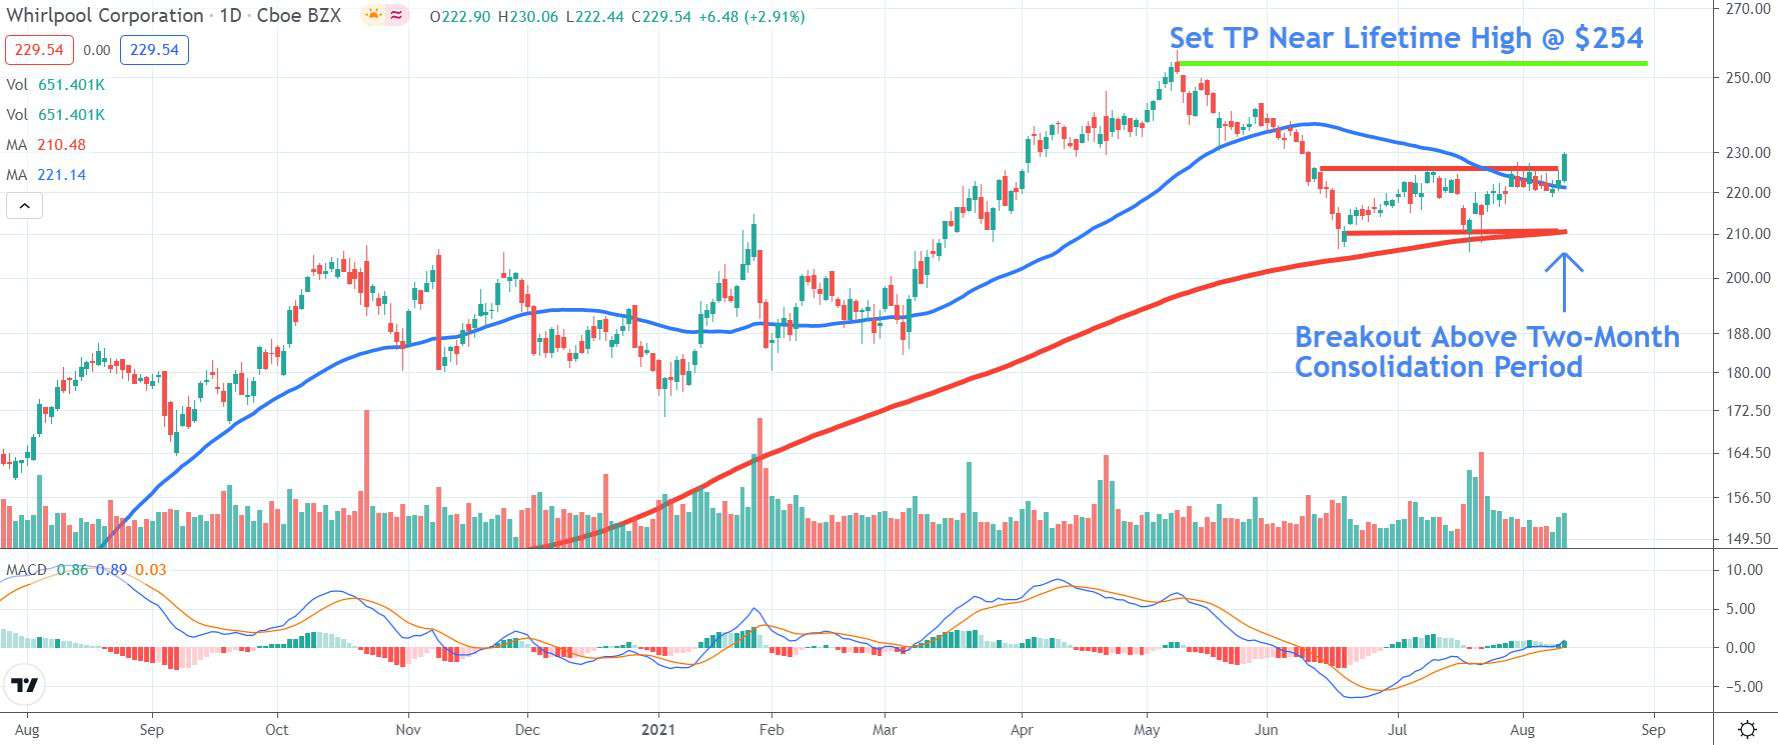 Chart depicting the share price of Whirlpool Corporation (WHR)